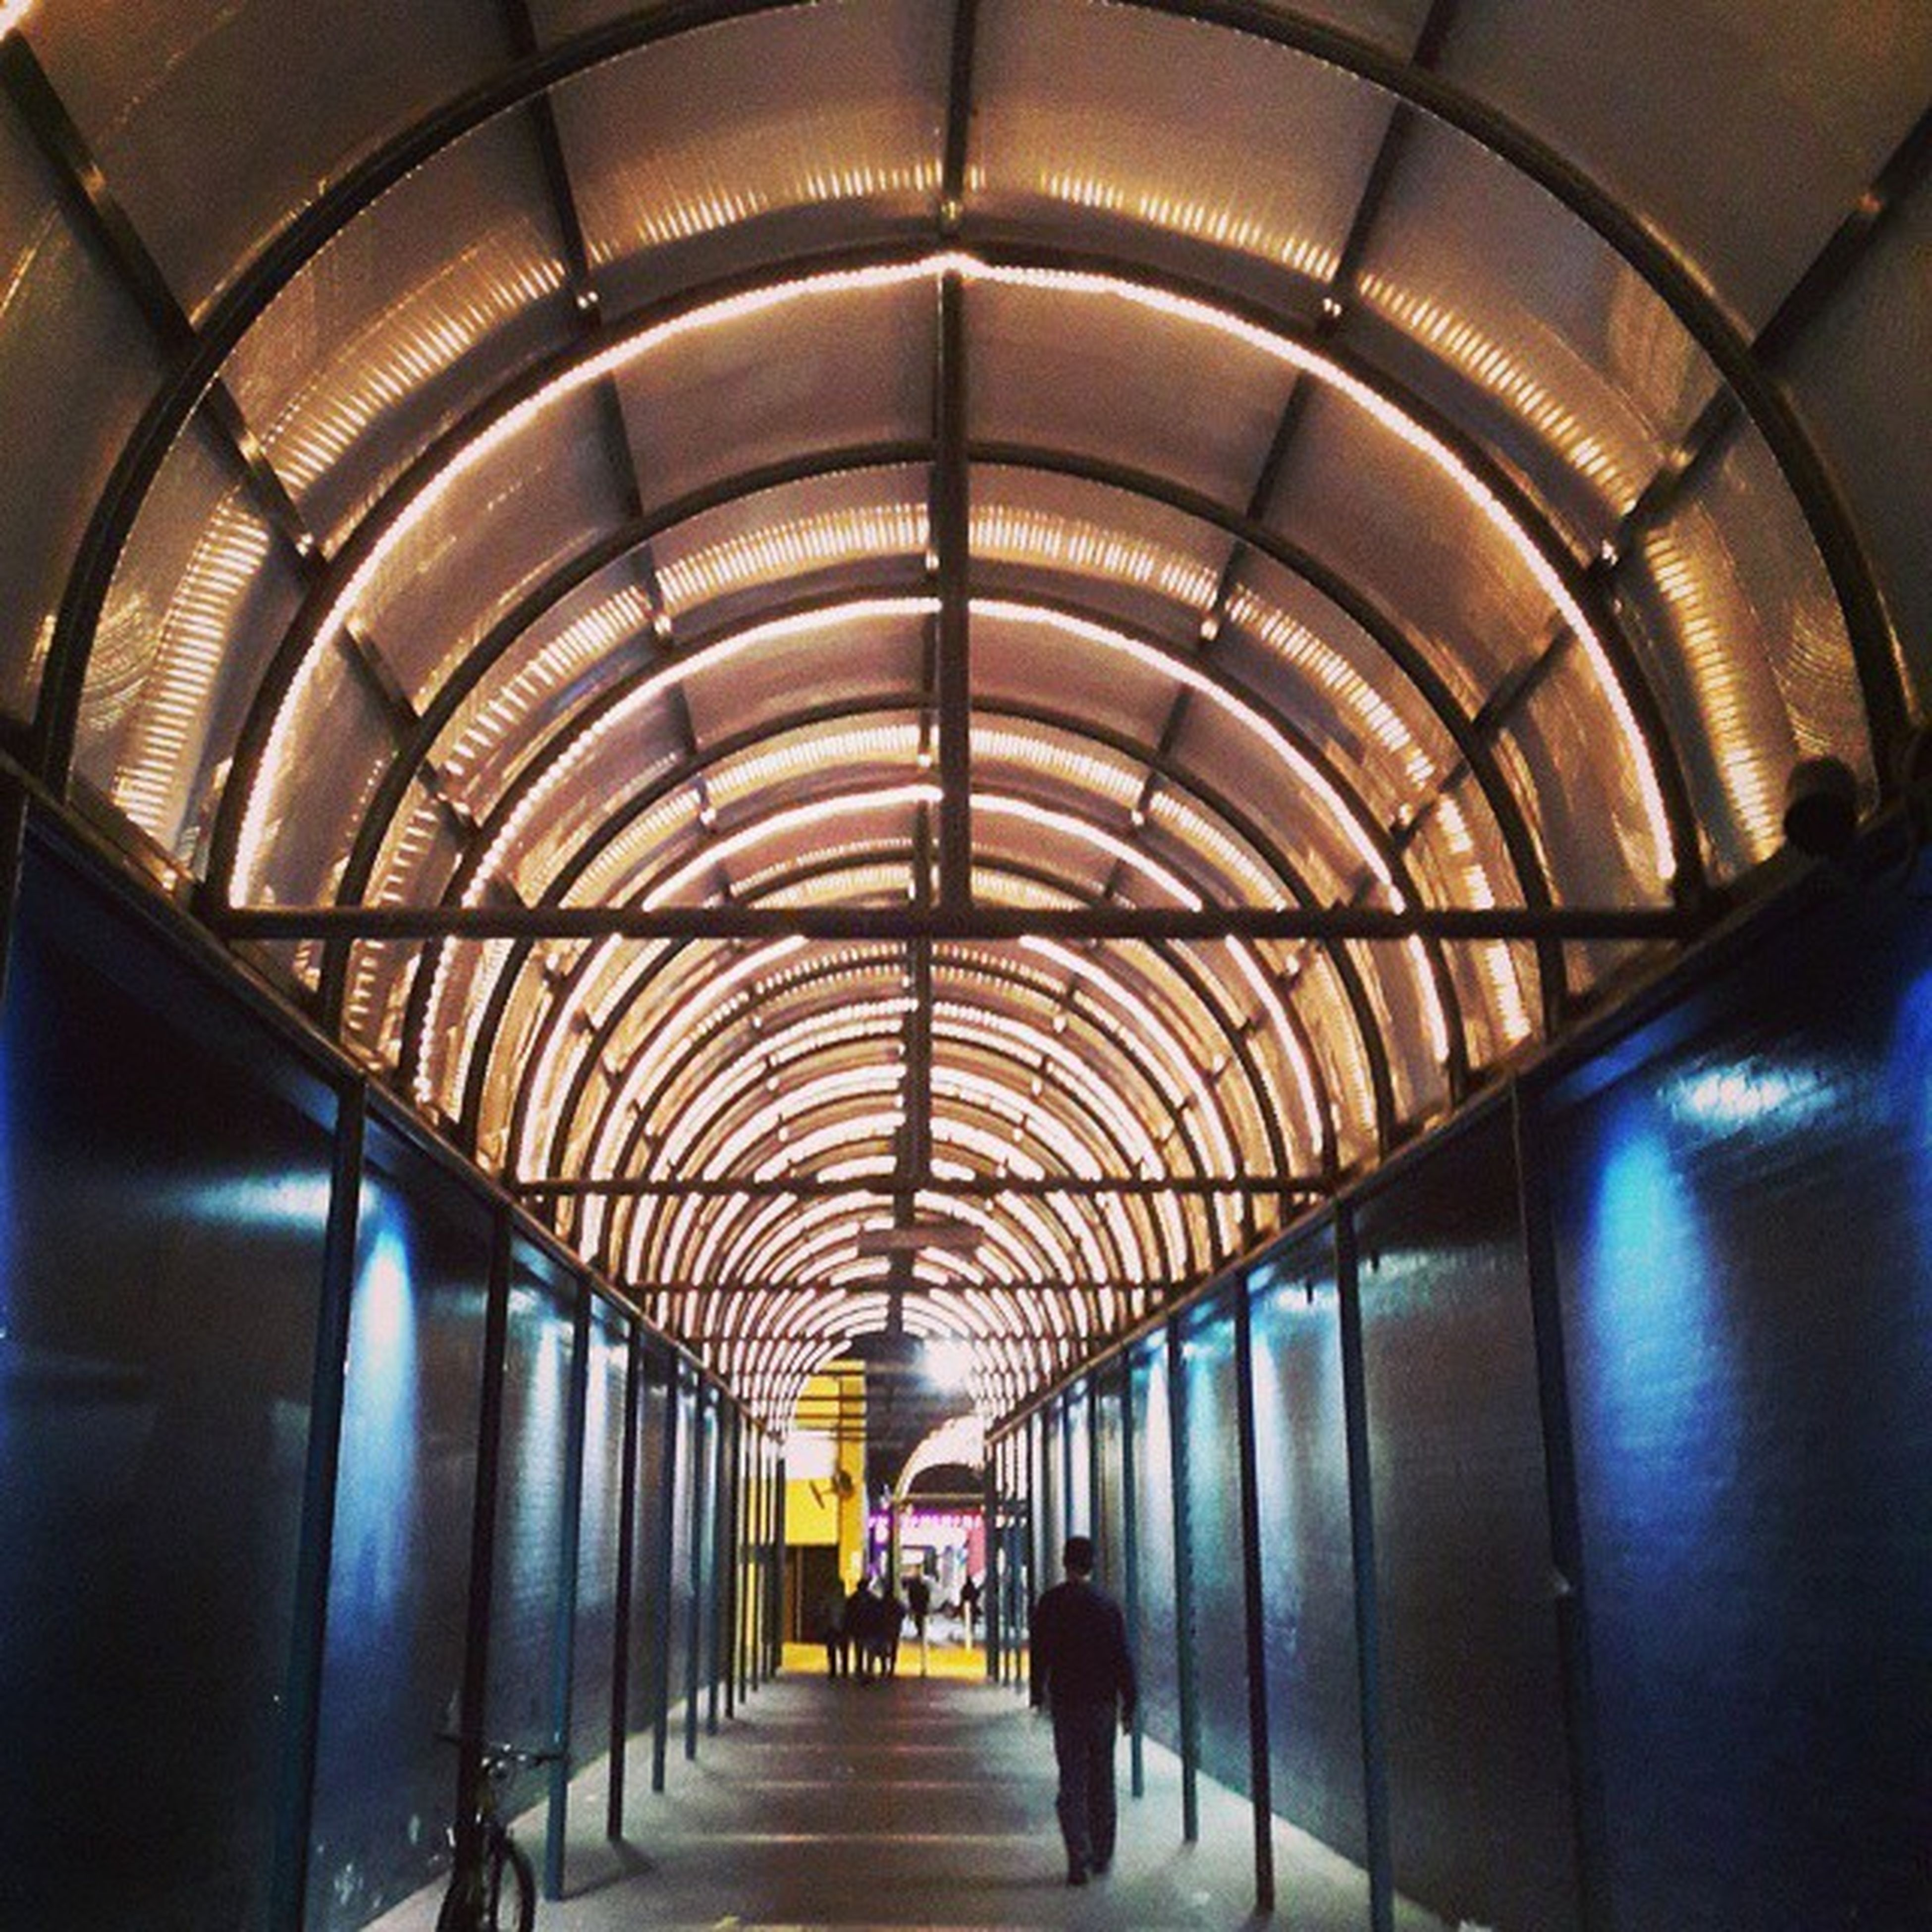 indoors, ceiling, the way forward, illuminated, diminishing perspective, corridor, lighting equipment, arch, in a row, architecture, built structure, tunnel, vanishing point, subway, walking, empty, incidental people, flooring, transportation